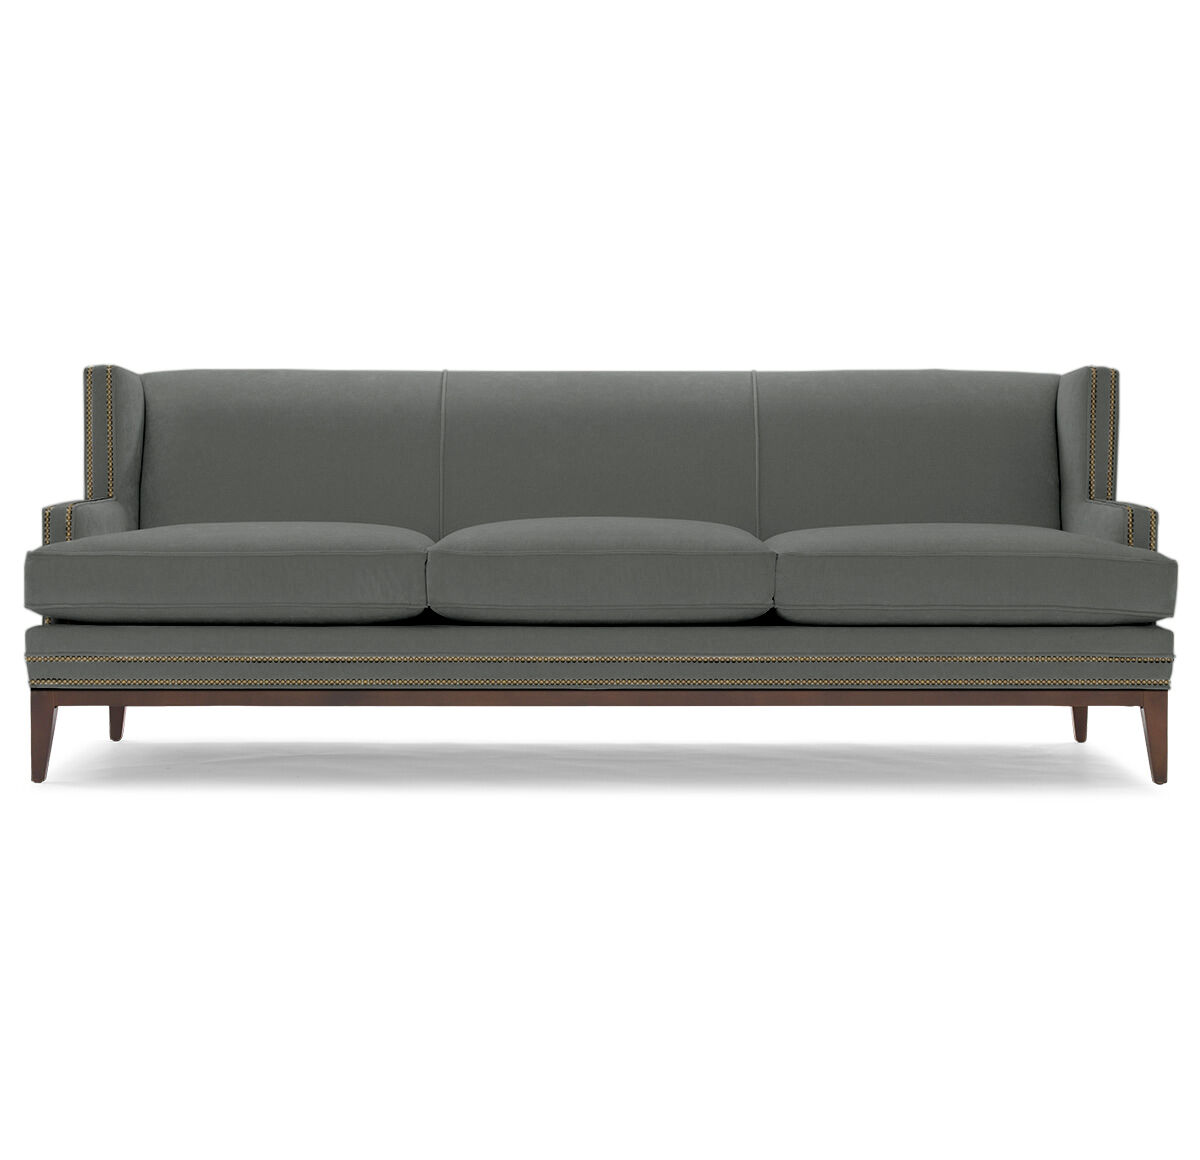 mitc gold hunter sofa top rated sofas for comfort mgbw 64 best images on pinterest and